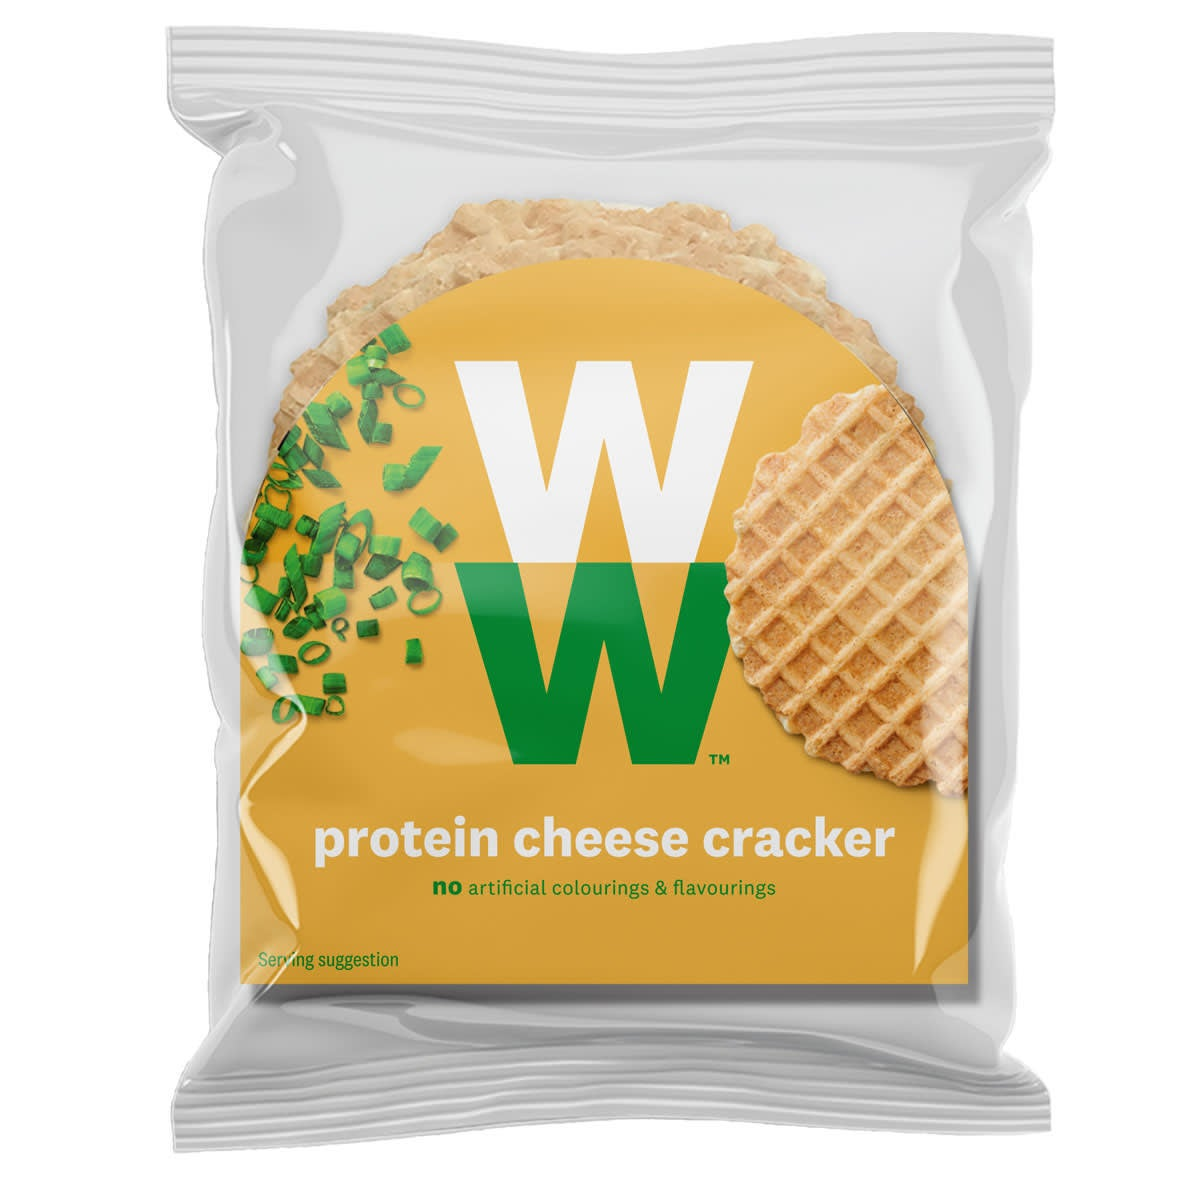 Crunchy with a deliciously cheesy flavour WW Protein Cheese Crackers, delicious on its own or with a topping, 2 SmartPoints values per portion, suitable for vegetarians